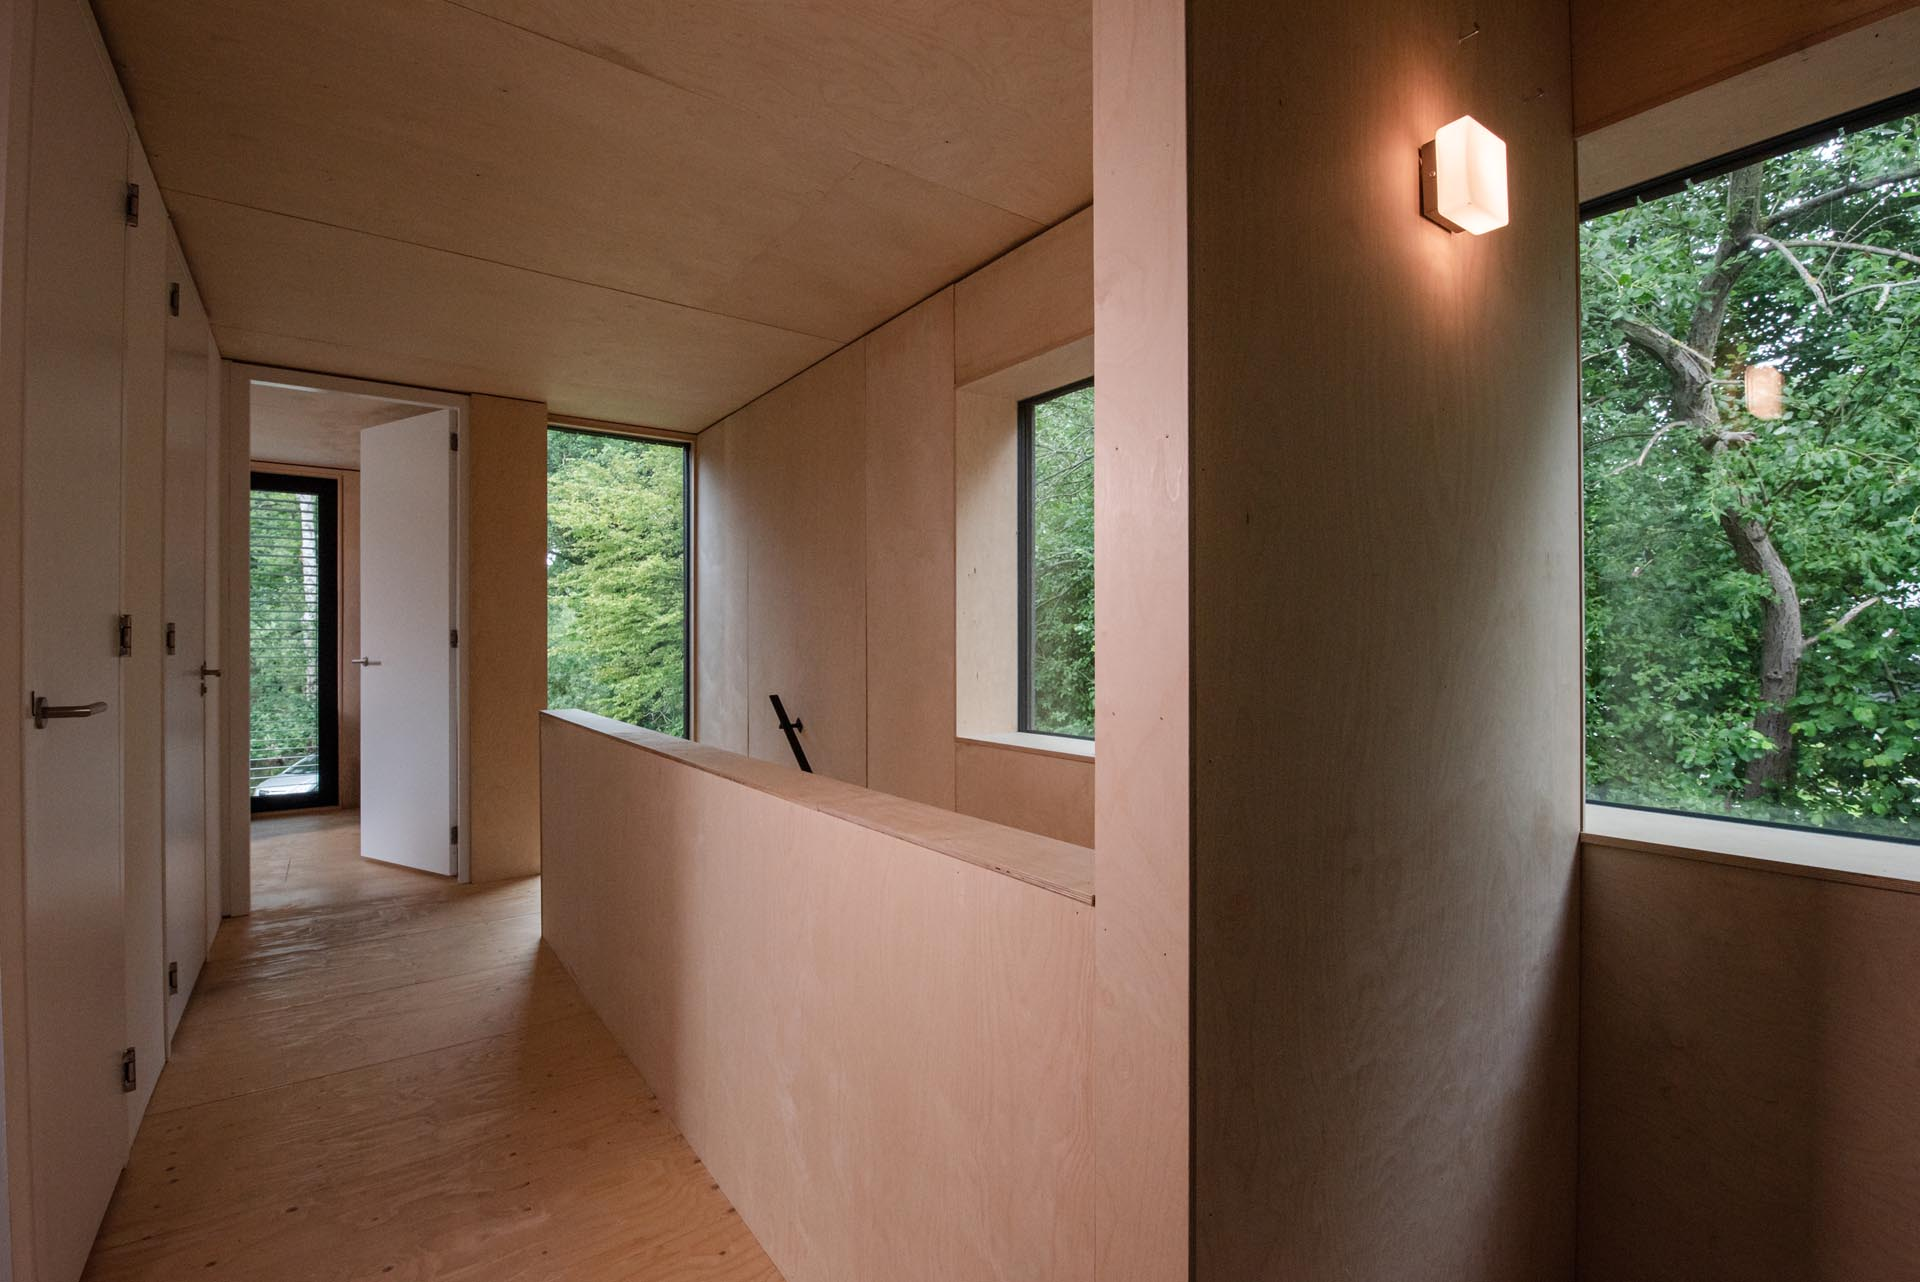 A modern home with a plywood interior and white doors.